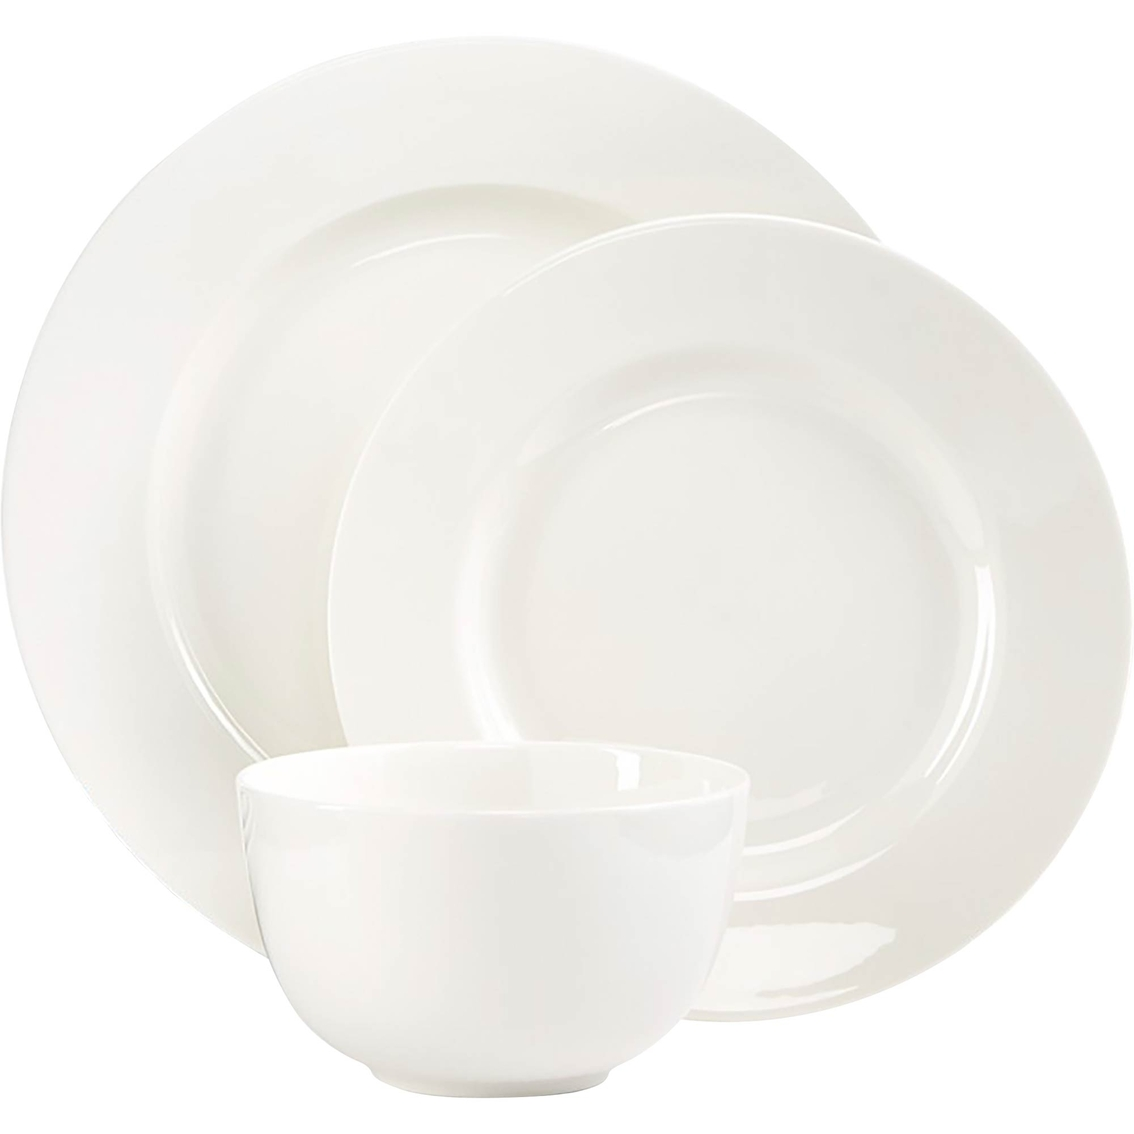 Martha Stewart Collection Kensington Round Dinnerware 12 Pc. Set  sc 1 st  Exchange & Martha Stewart Collection Kensington Round Dinnerware 12 Pc. Set ...